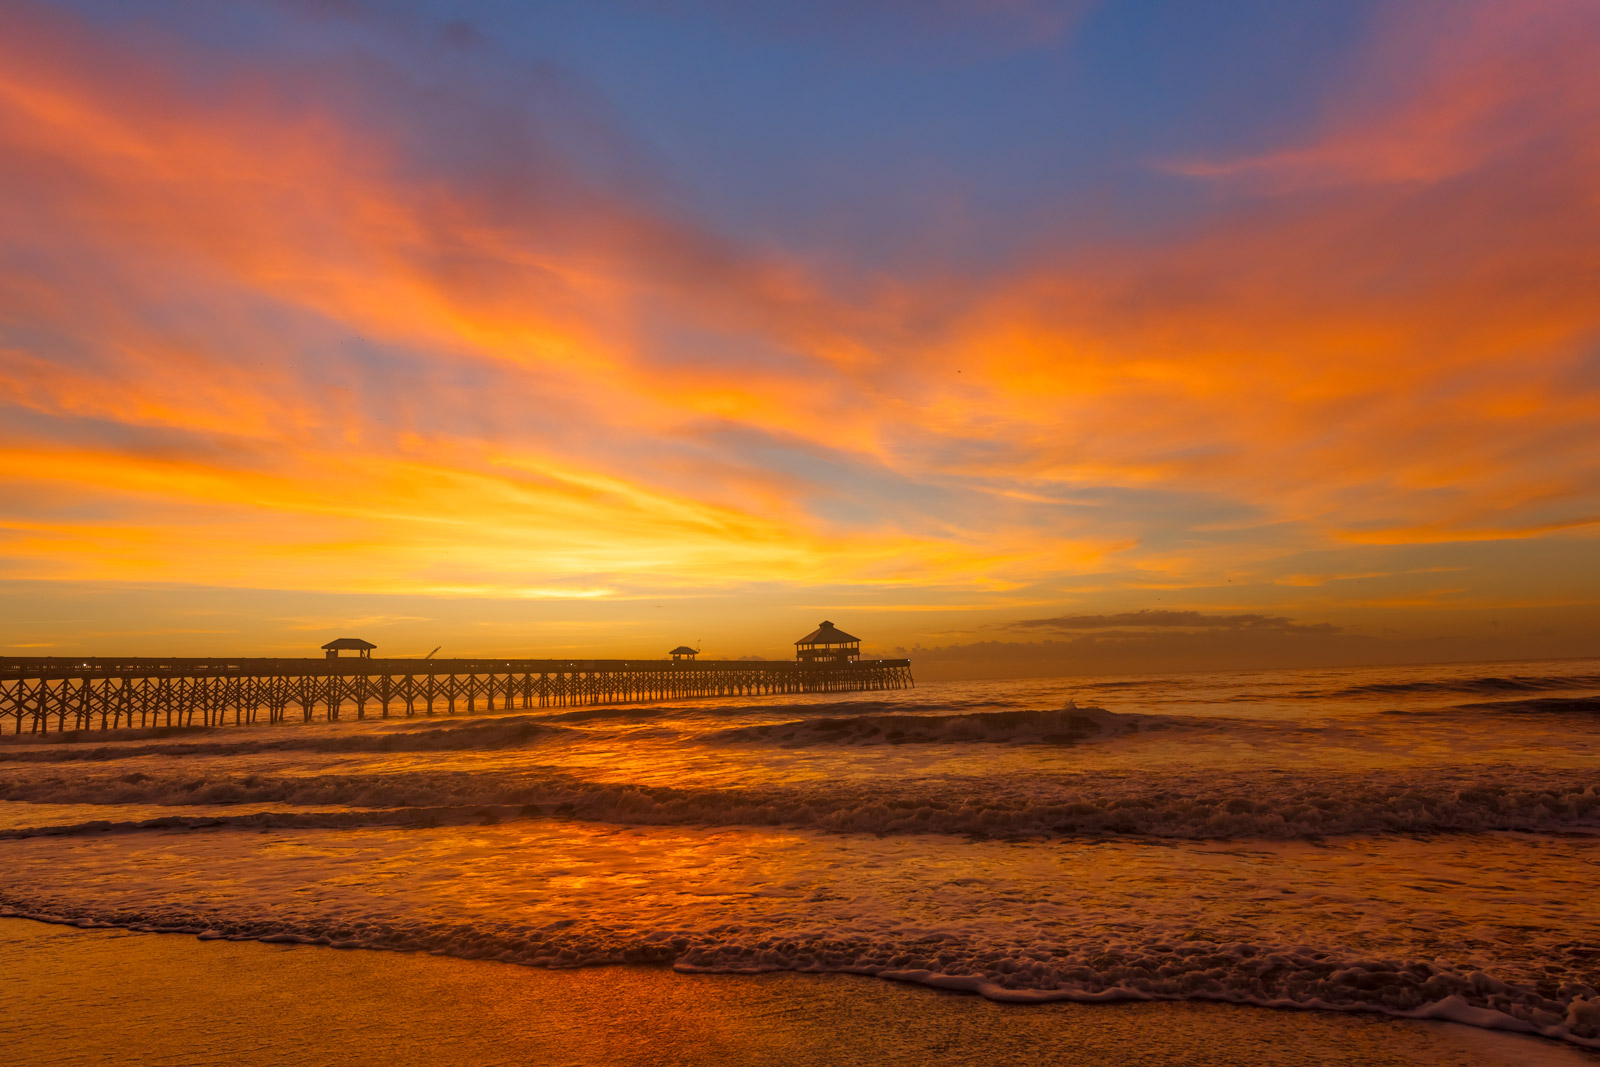 South Carolina, Folly Beach, Pier, Sunrise, photo